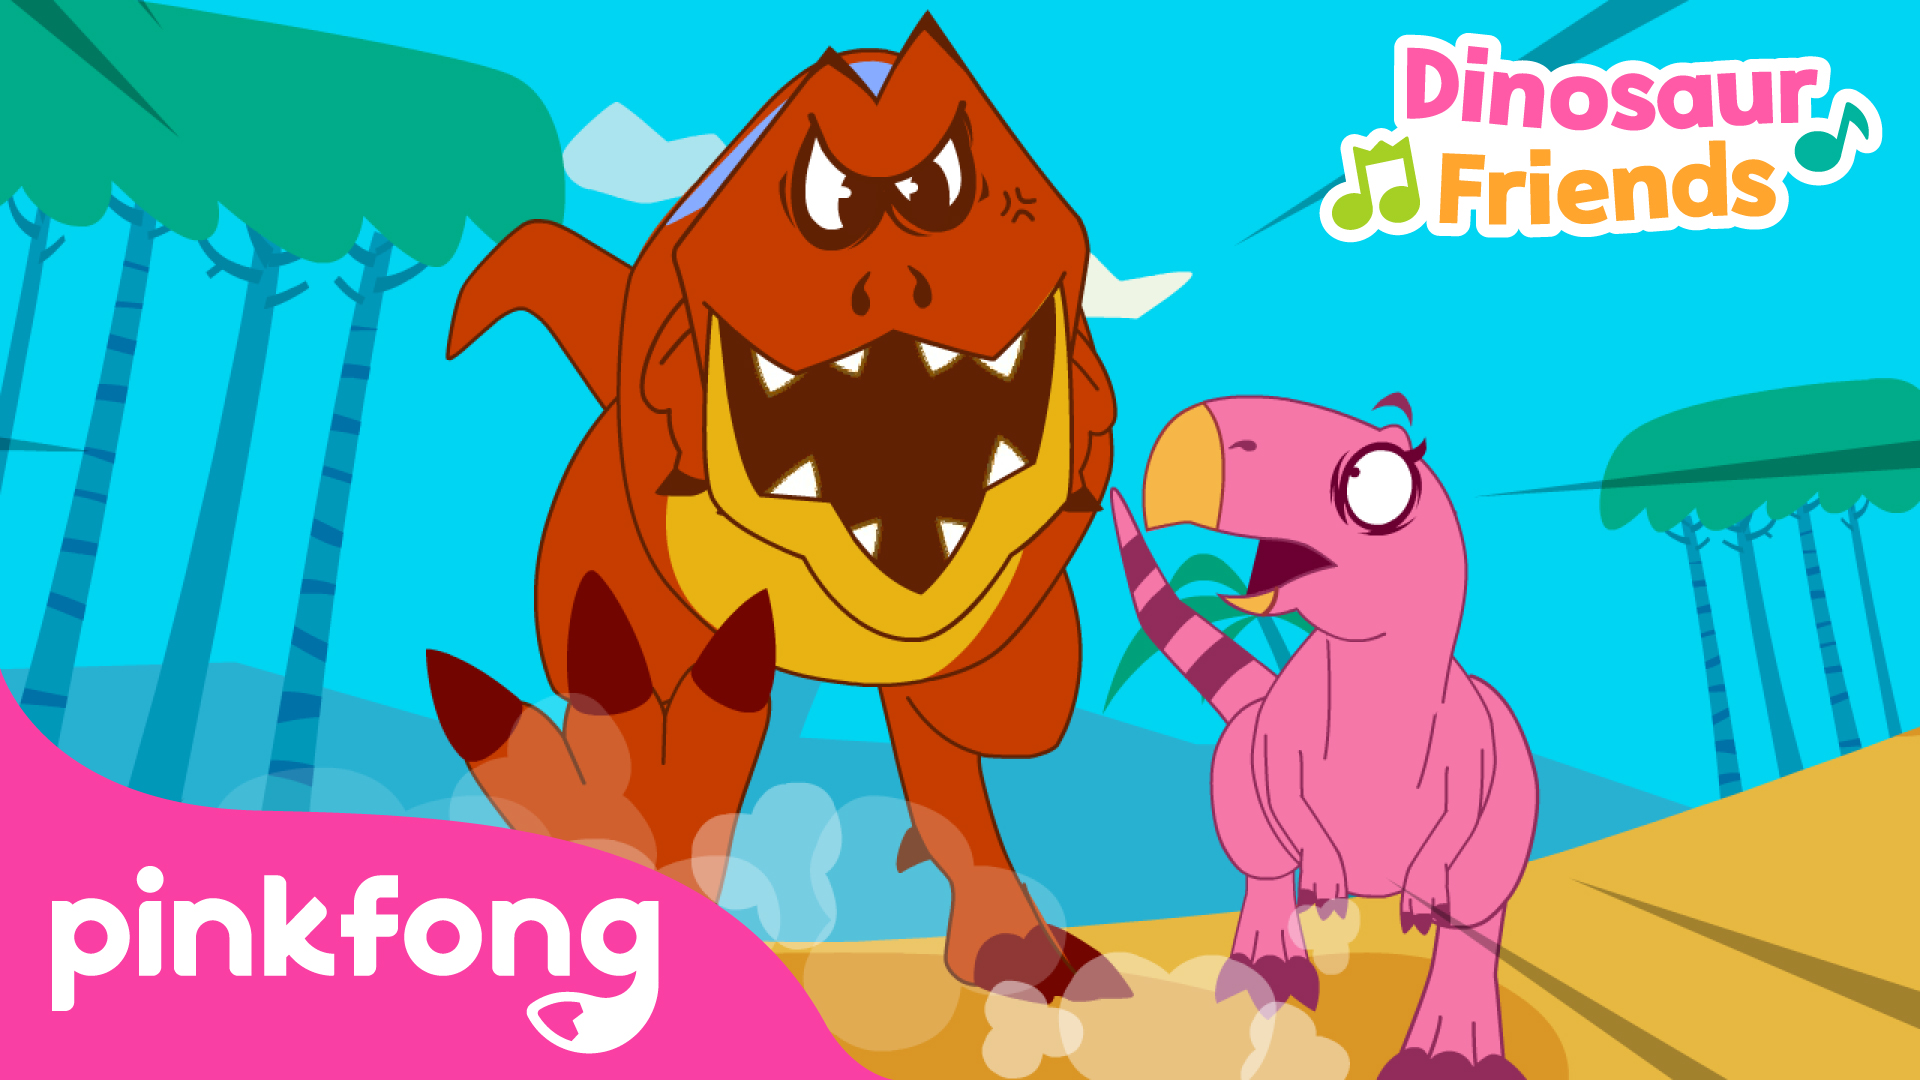 Pinkfong! Dinosaur Friends